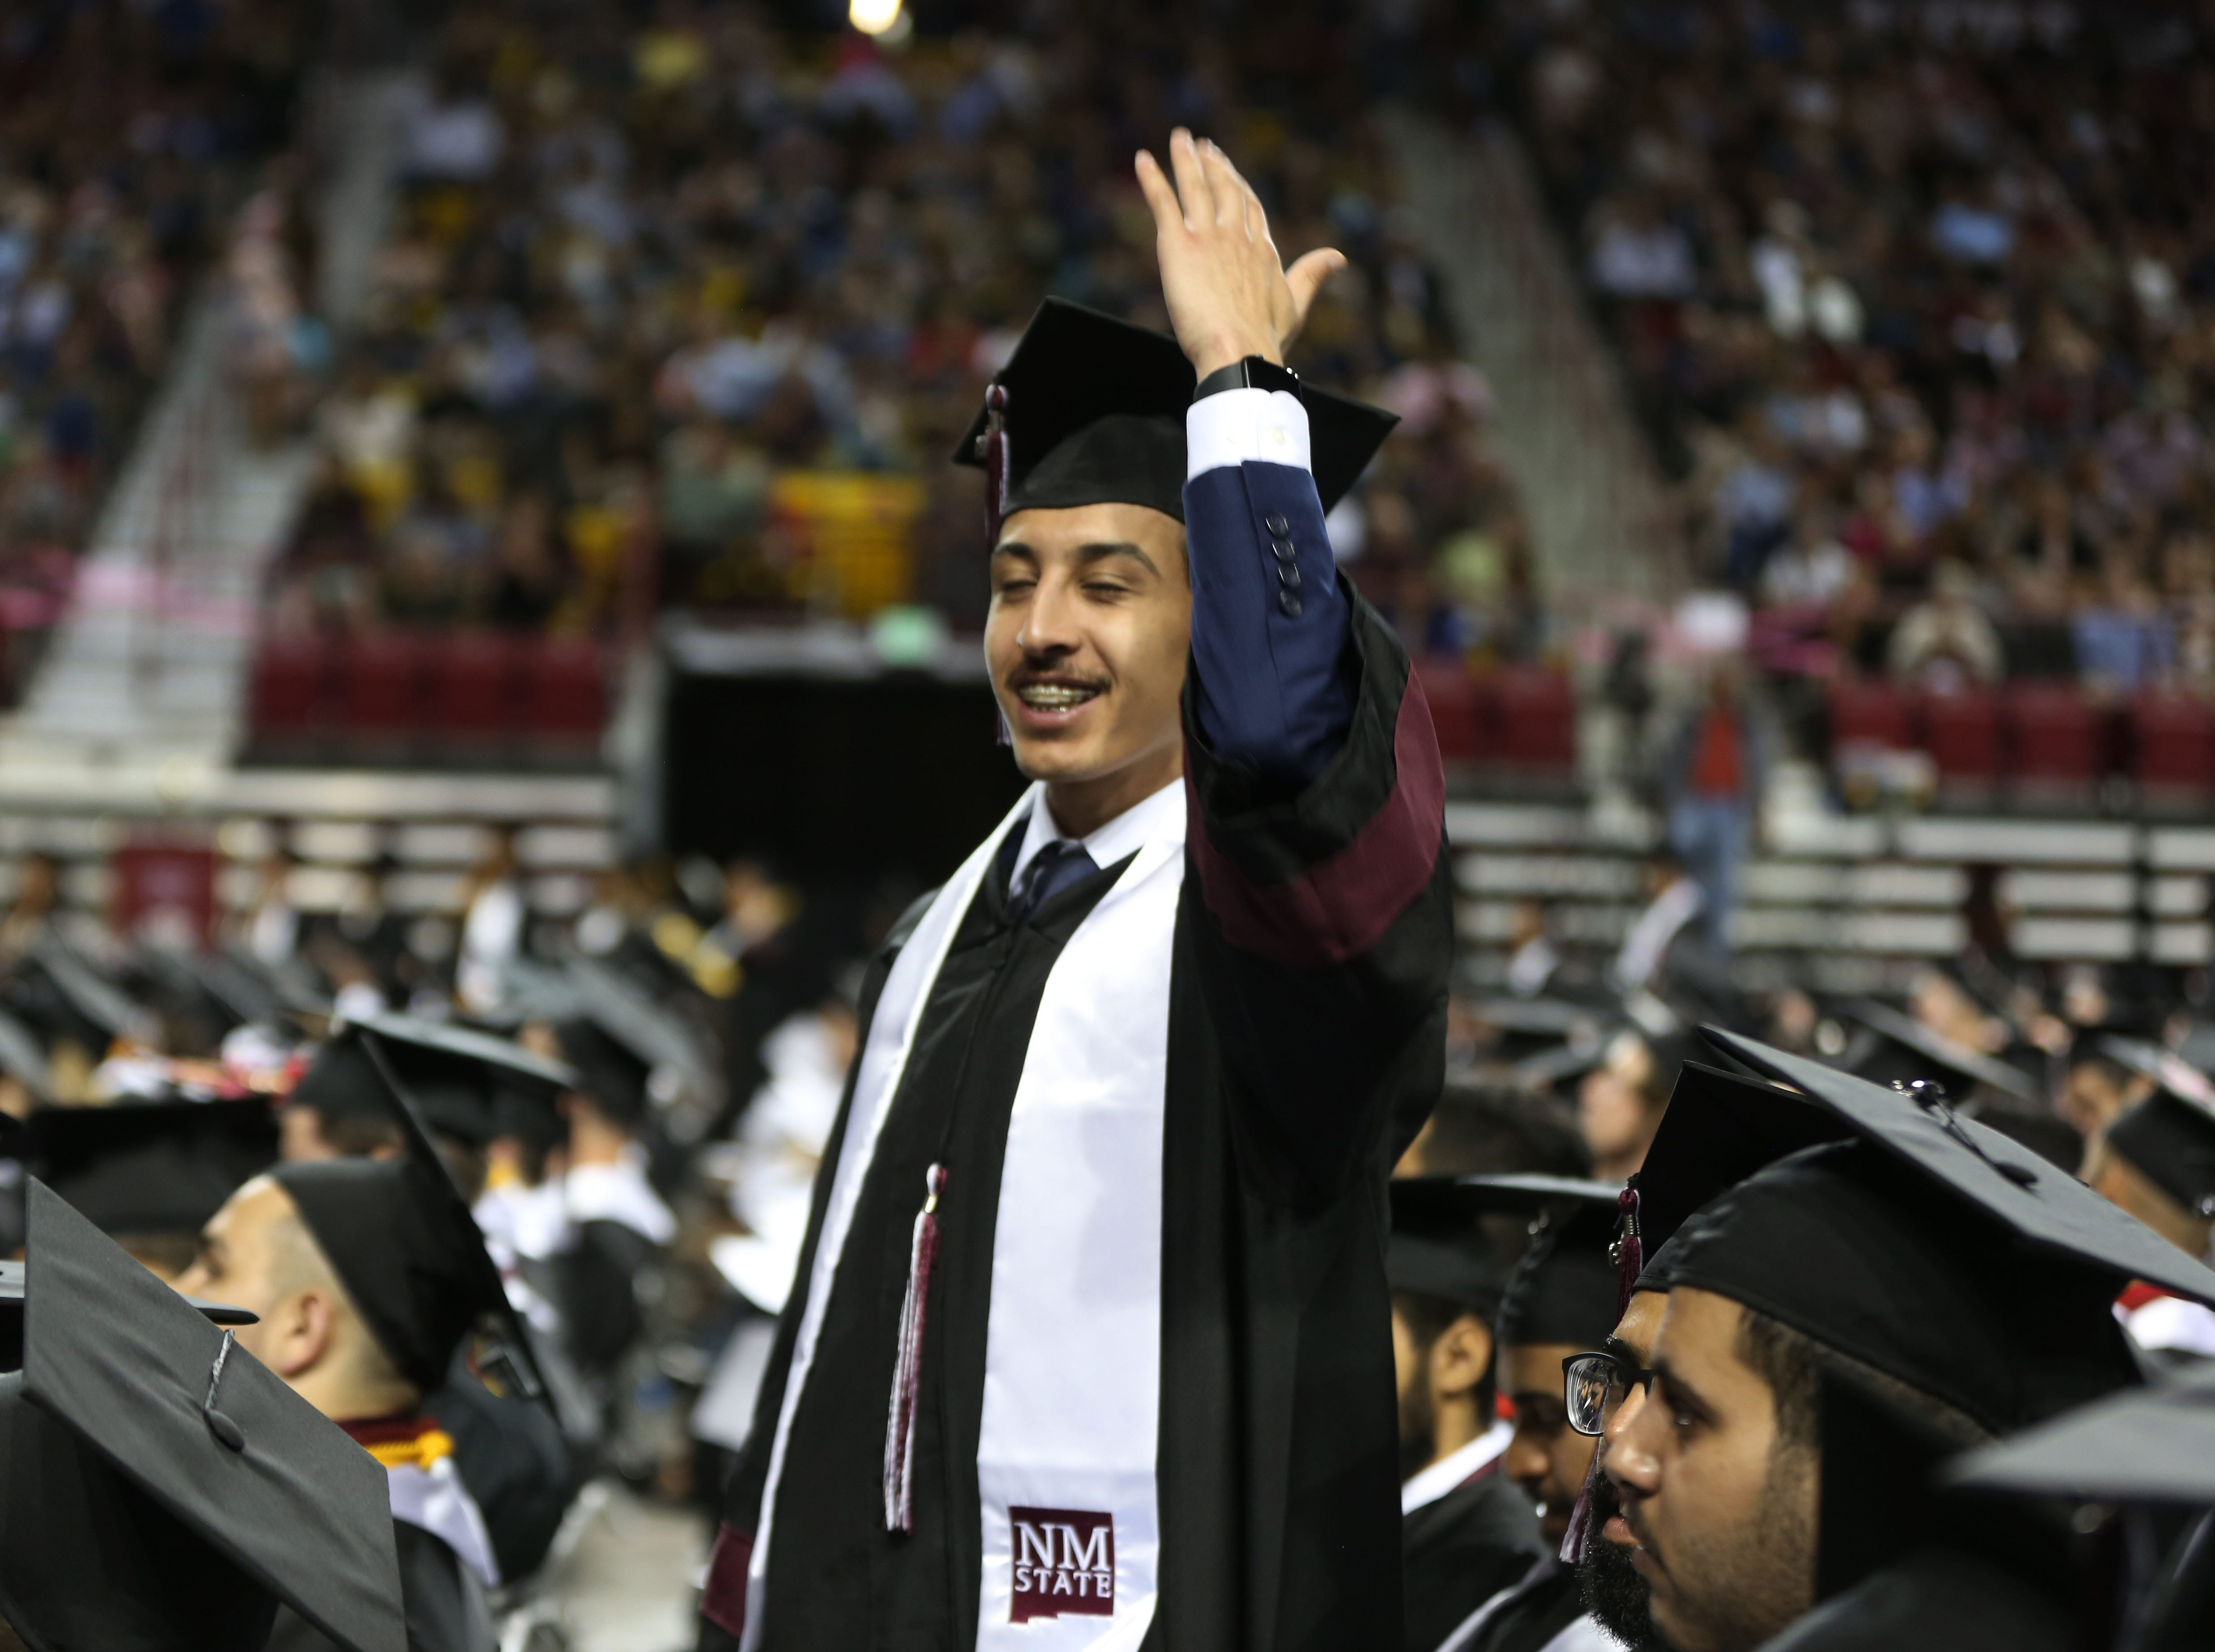 A New Mexico State University graduate, waves to the crowd after receiving his degree during the school's commencement ceremony, Saturday May 11, 2019.